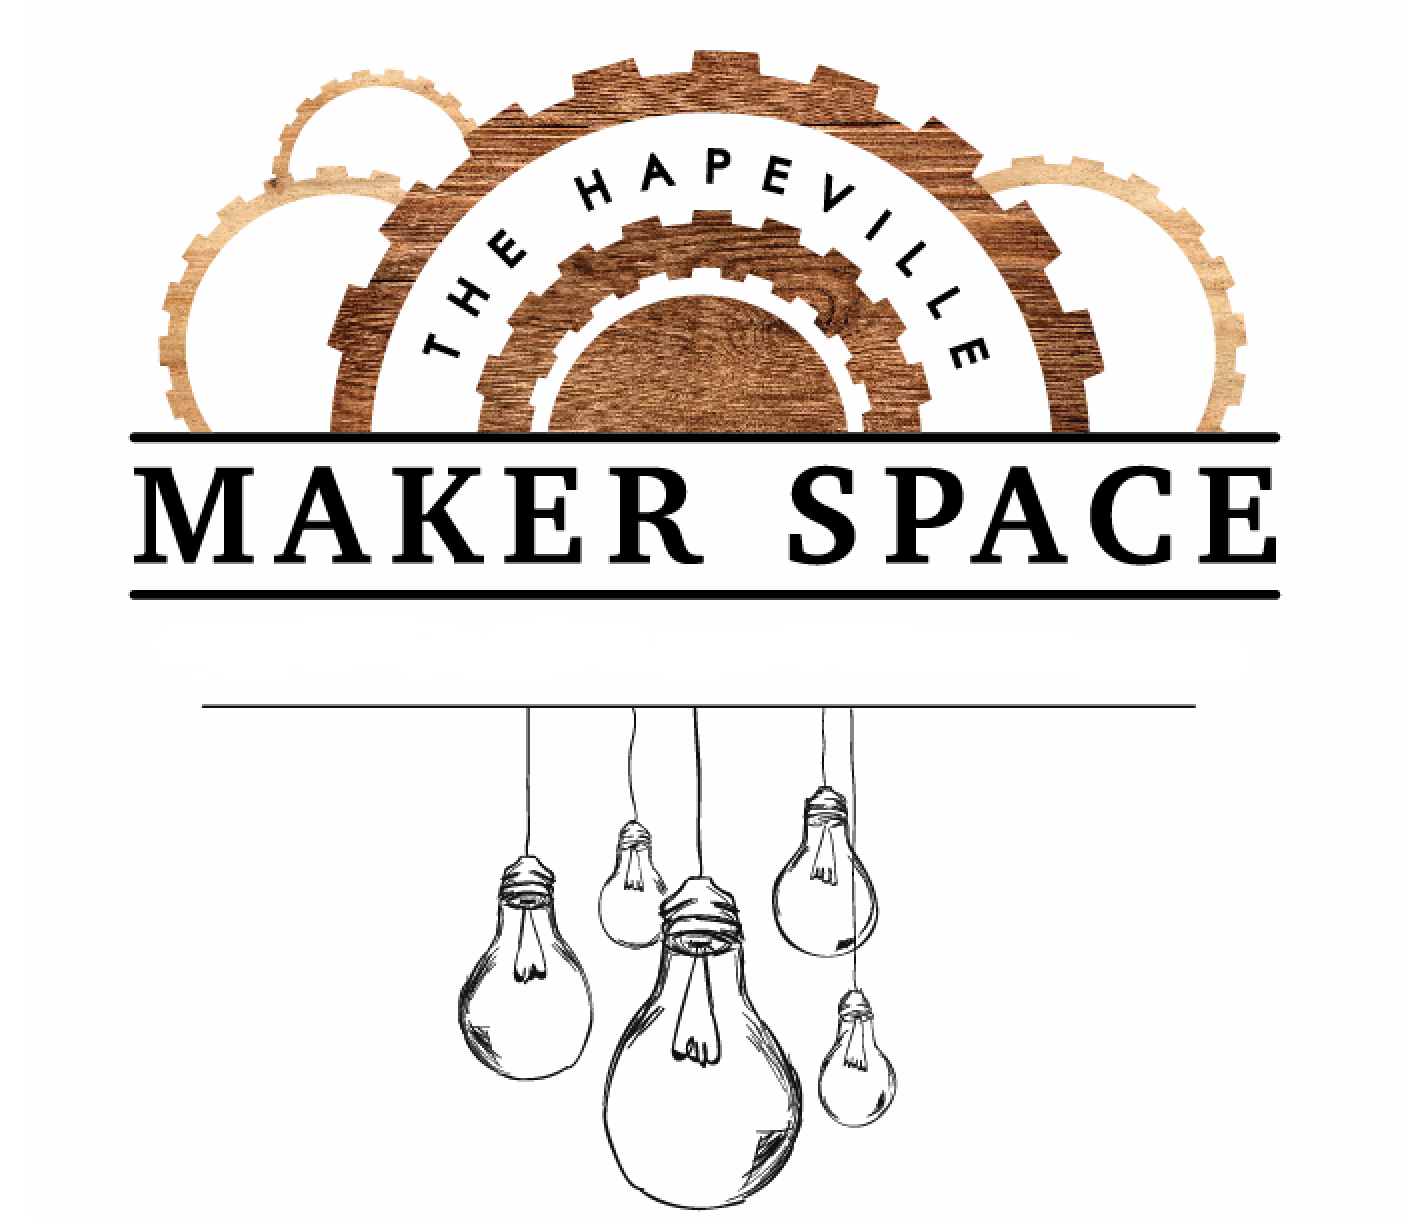 The Hapeville Maker Space